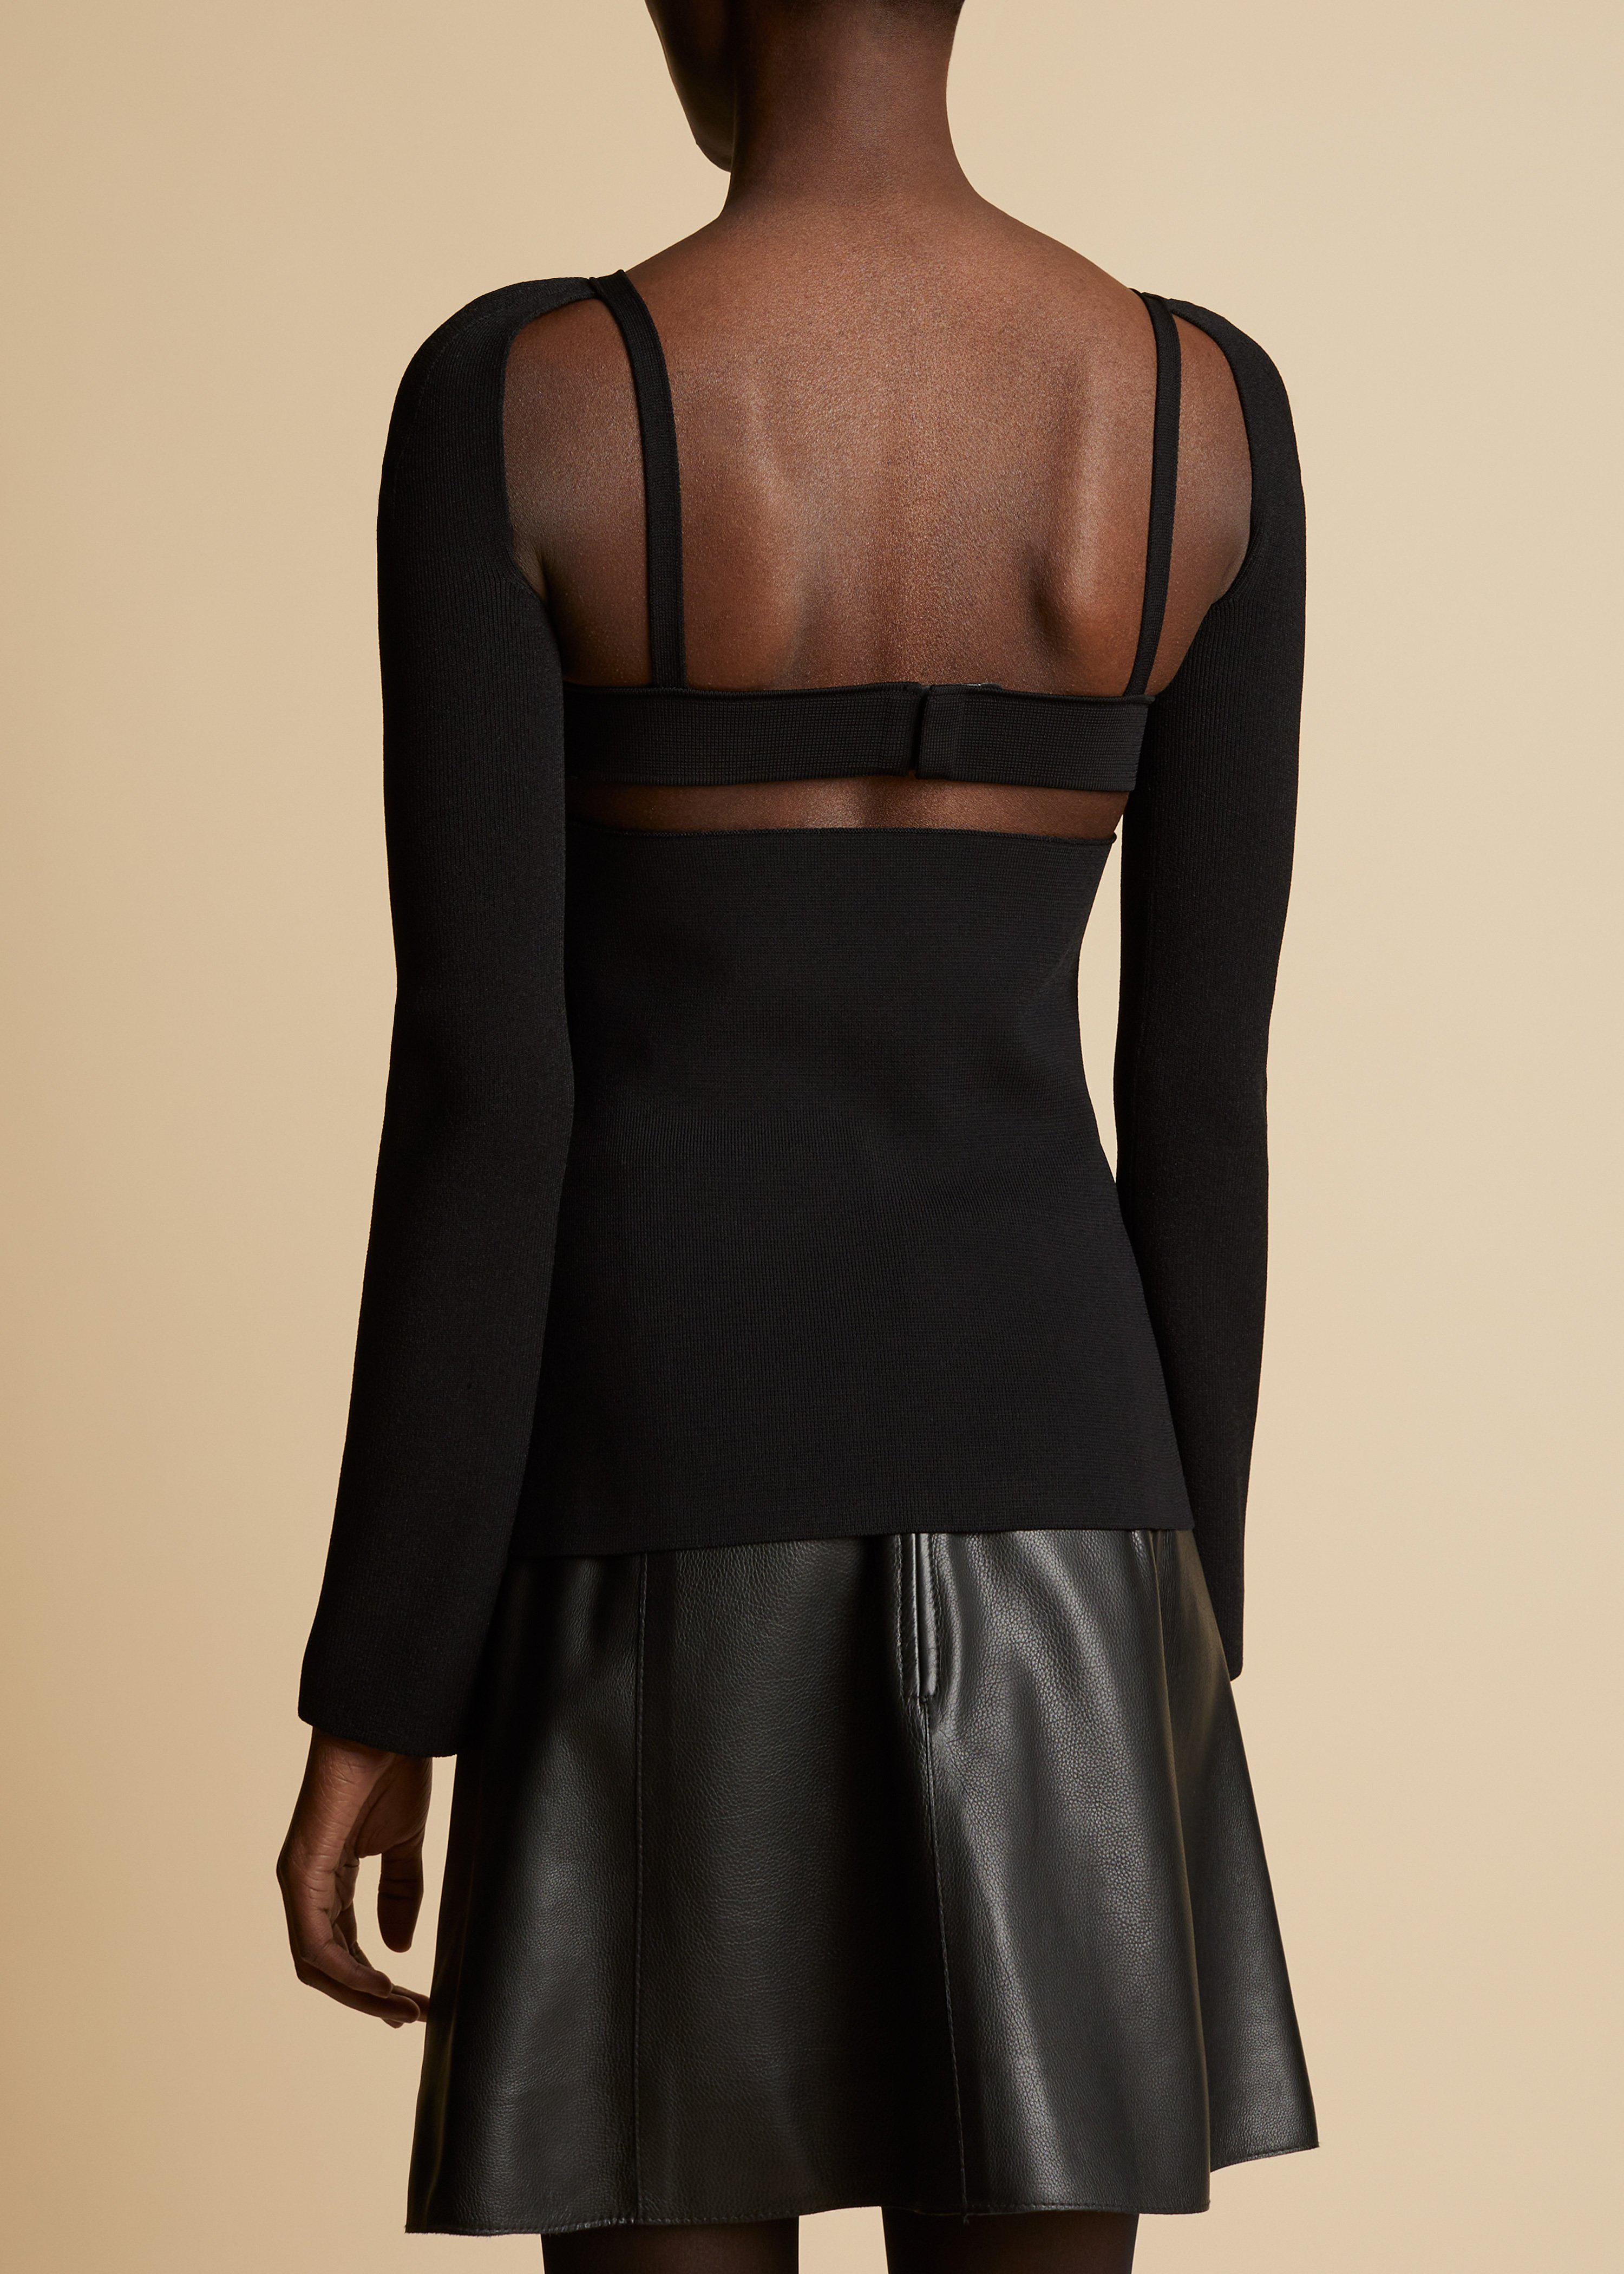 The Roza Top in Black 2